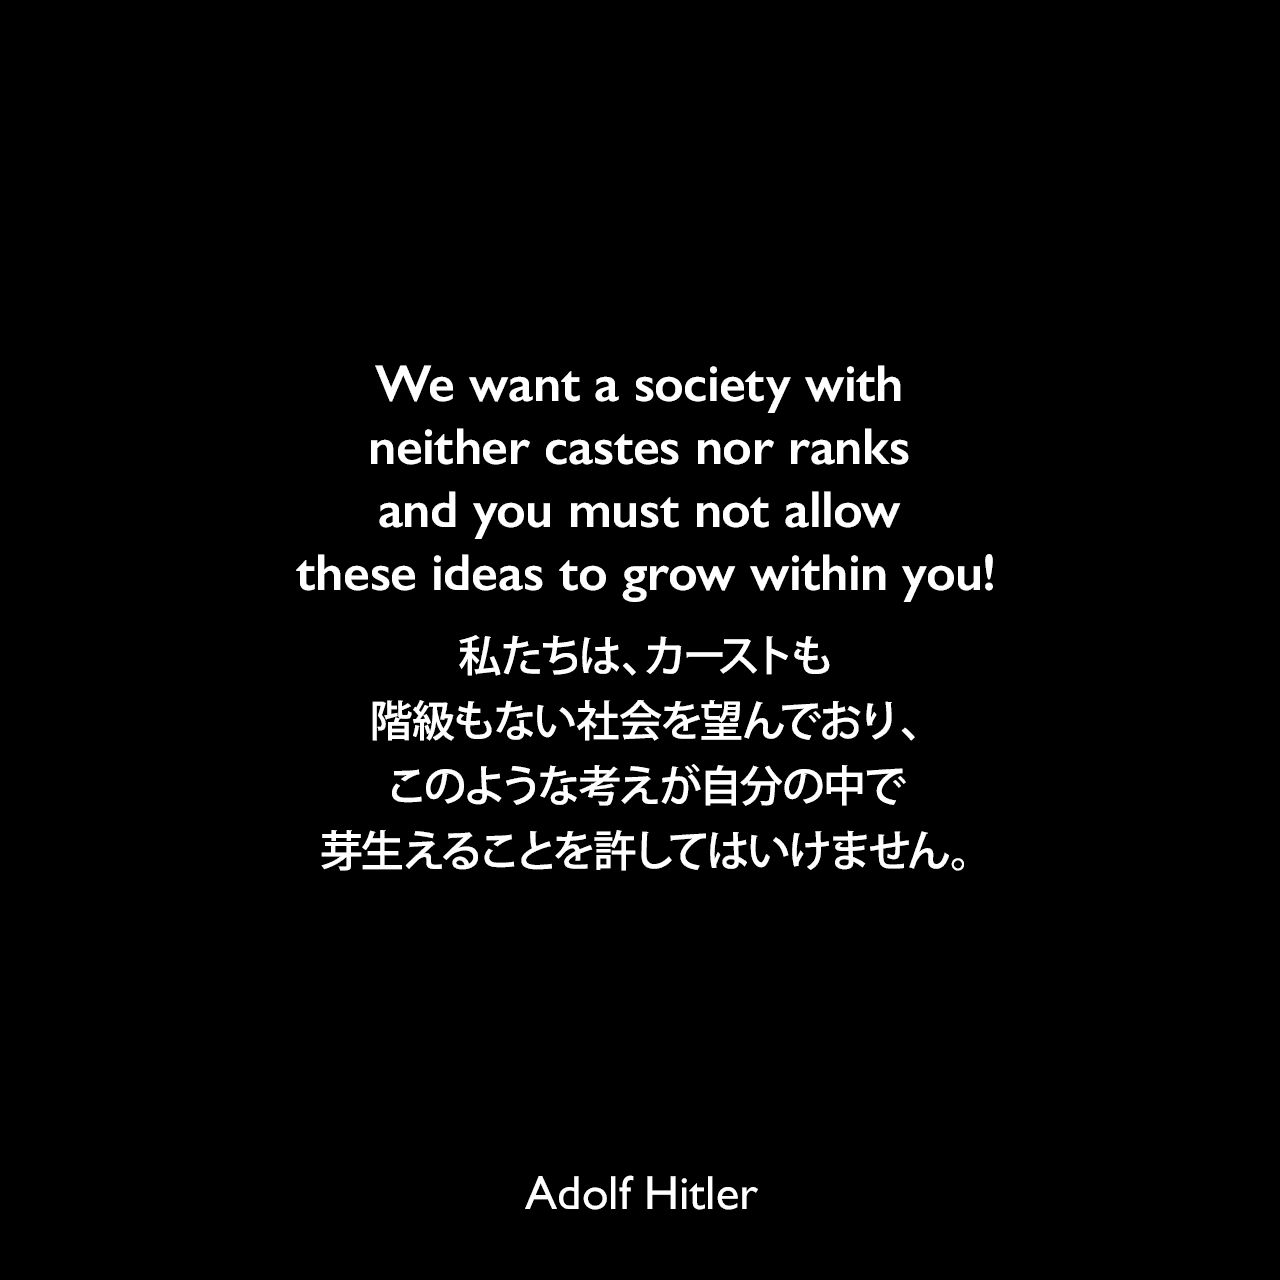 We want a society with neither castes nor ranks and you must not allow these ideas to grow within you!私たちは、カーストも階級もない社会を望んでおり、このような考えが自分の中で芽生えることを許してはいけません。- 映画「意志の勝利」よりAdolf Hitler